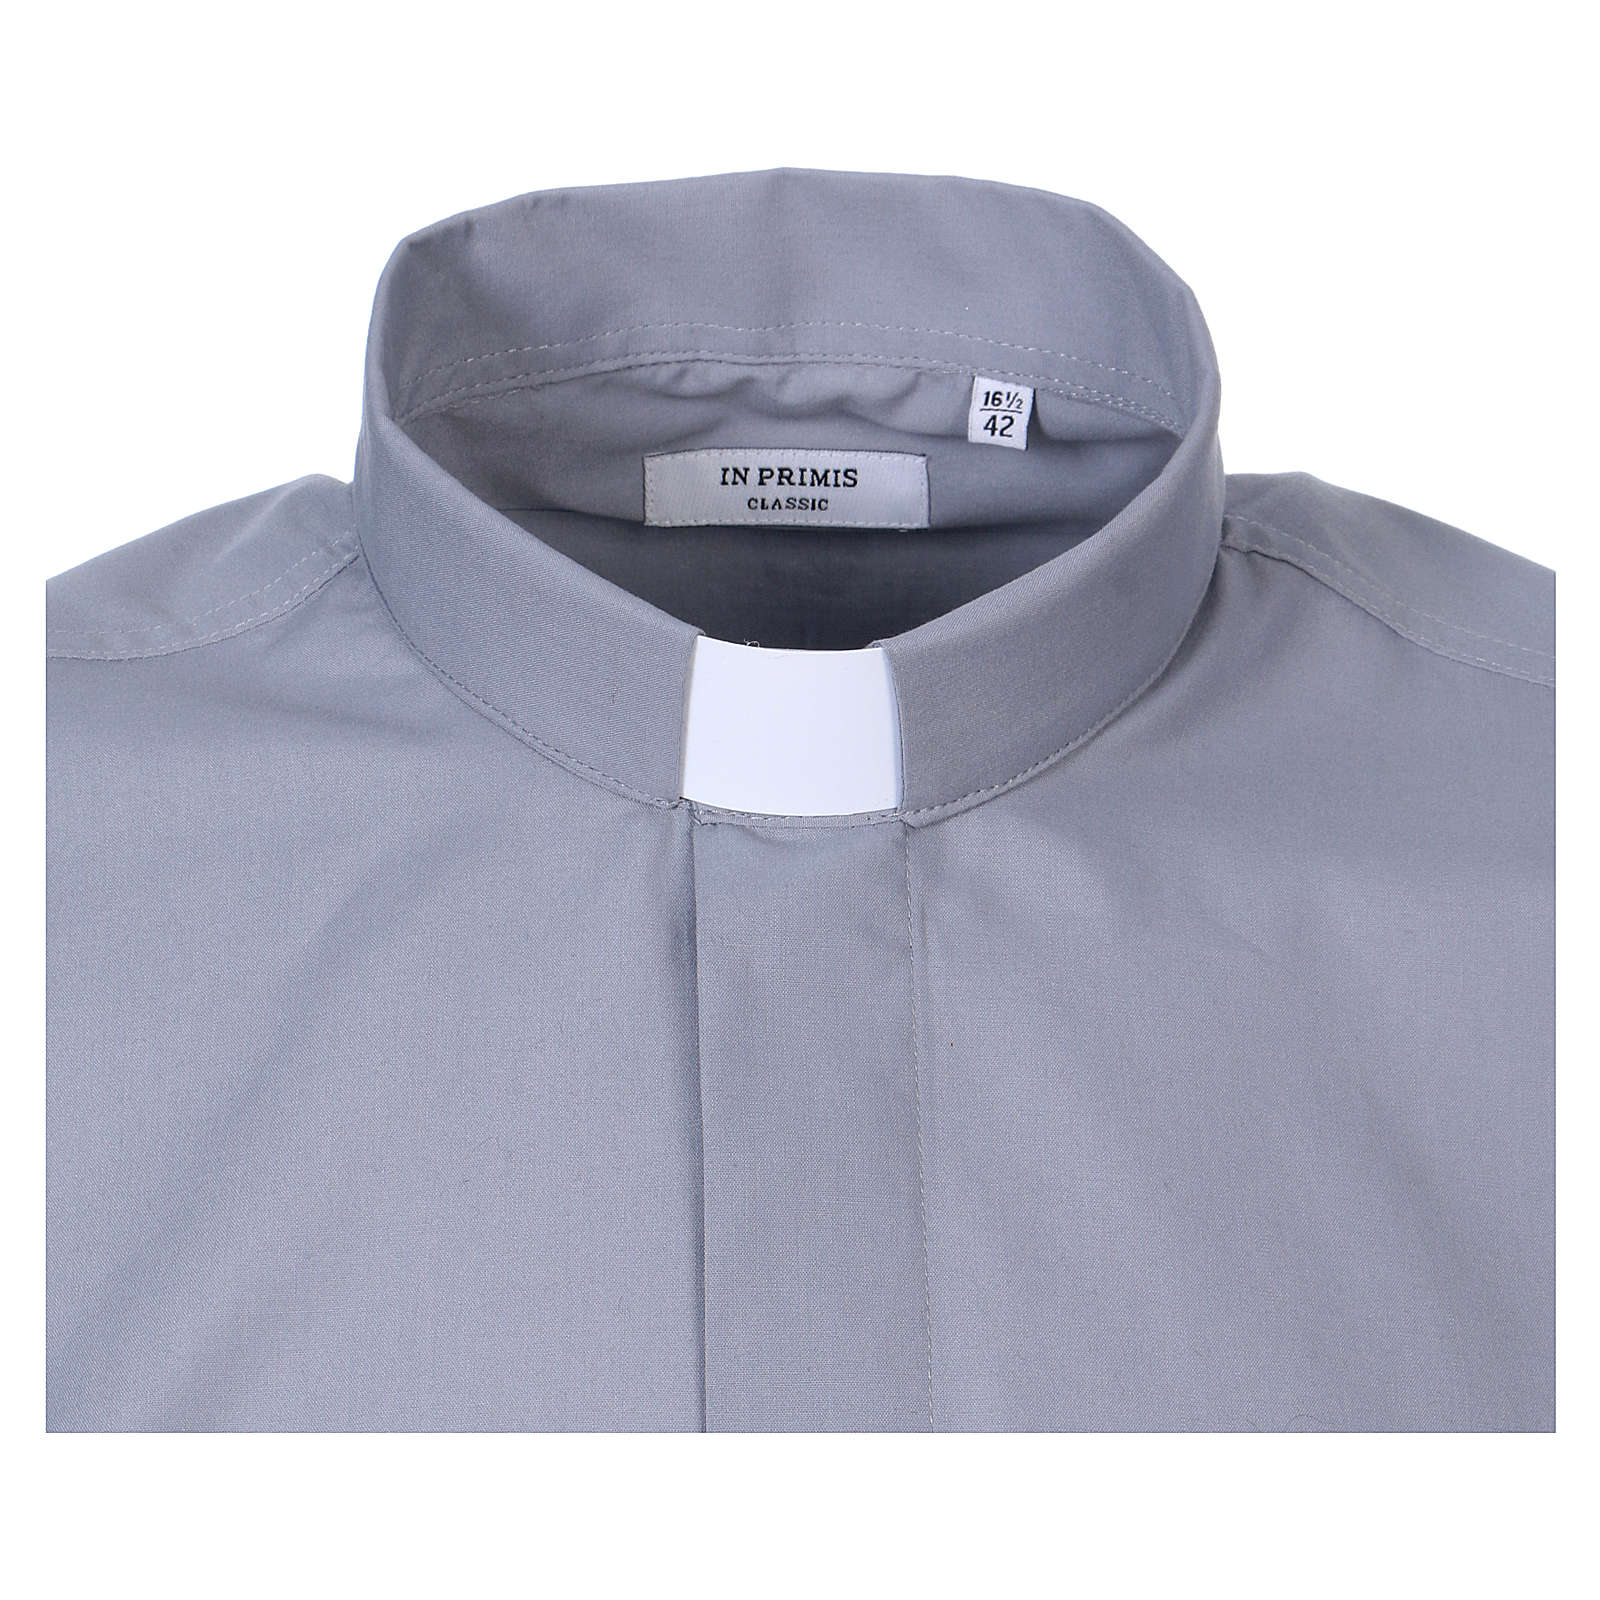 Camisa Clergy manga larga mixto algodón gris claro In Primis 4